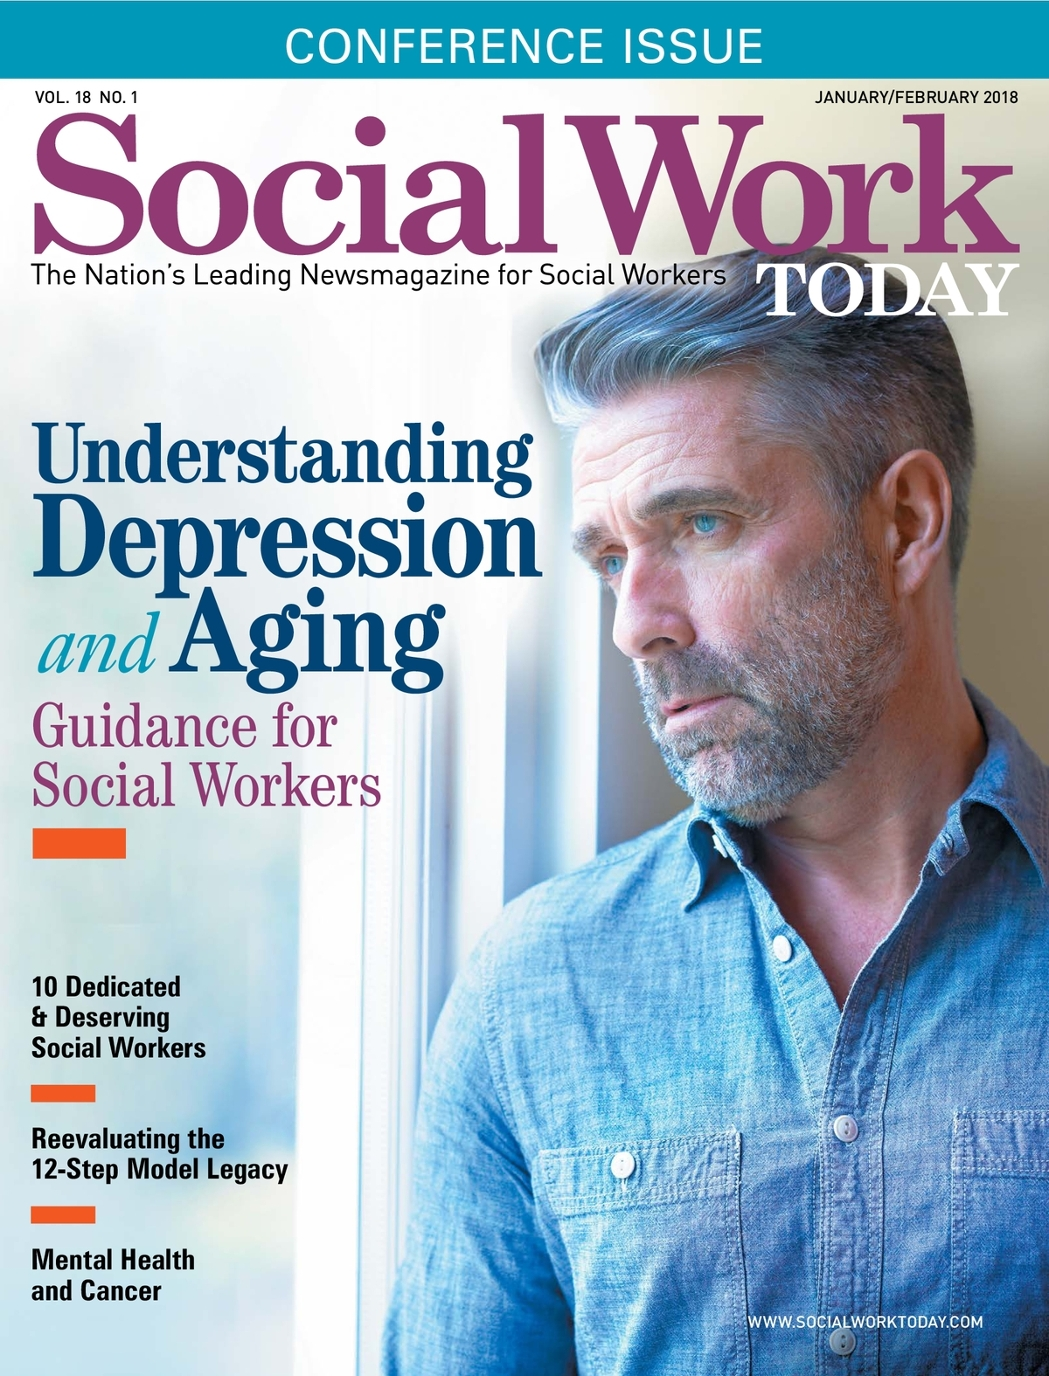 January/February 2018 - Social Work Today